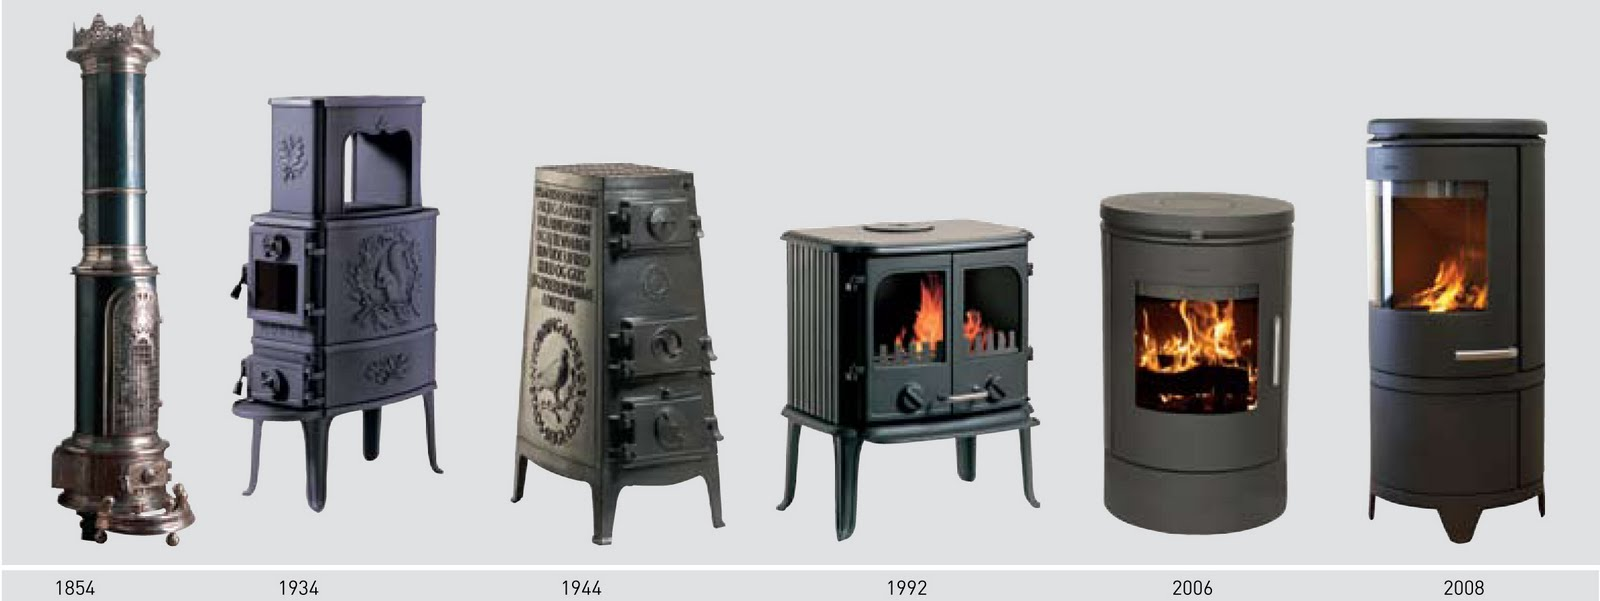 Morso energy efficient wood stoves historical foundation for Most efficient small wood burning stove